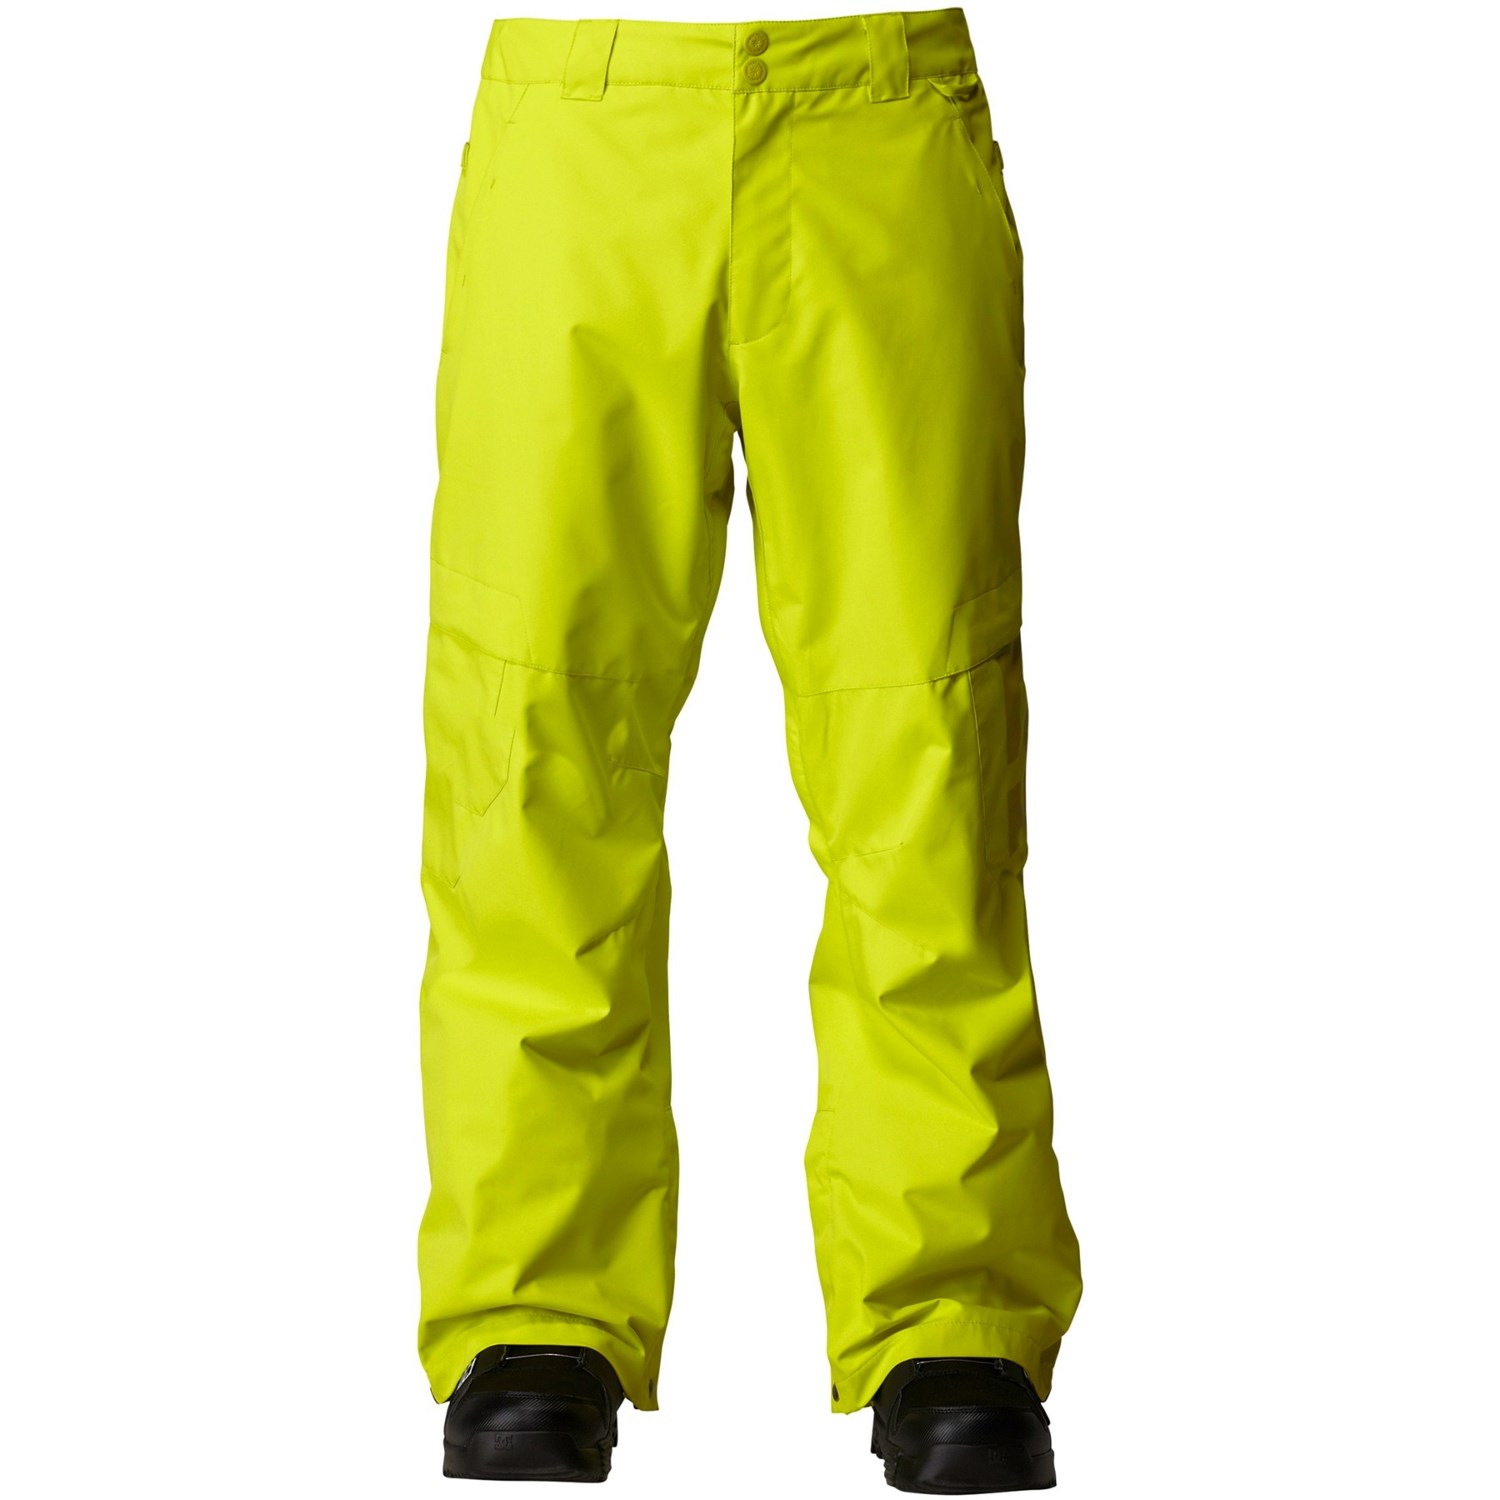 Simple Women39s Spring  Autumn  Winter Hiking Pants PantsWaterproof